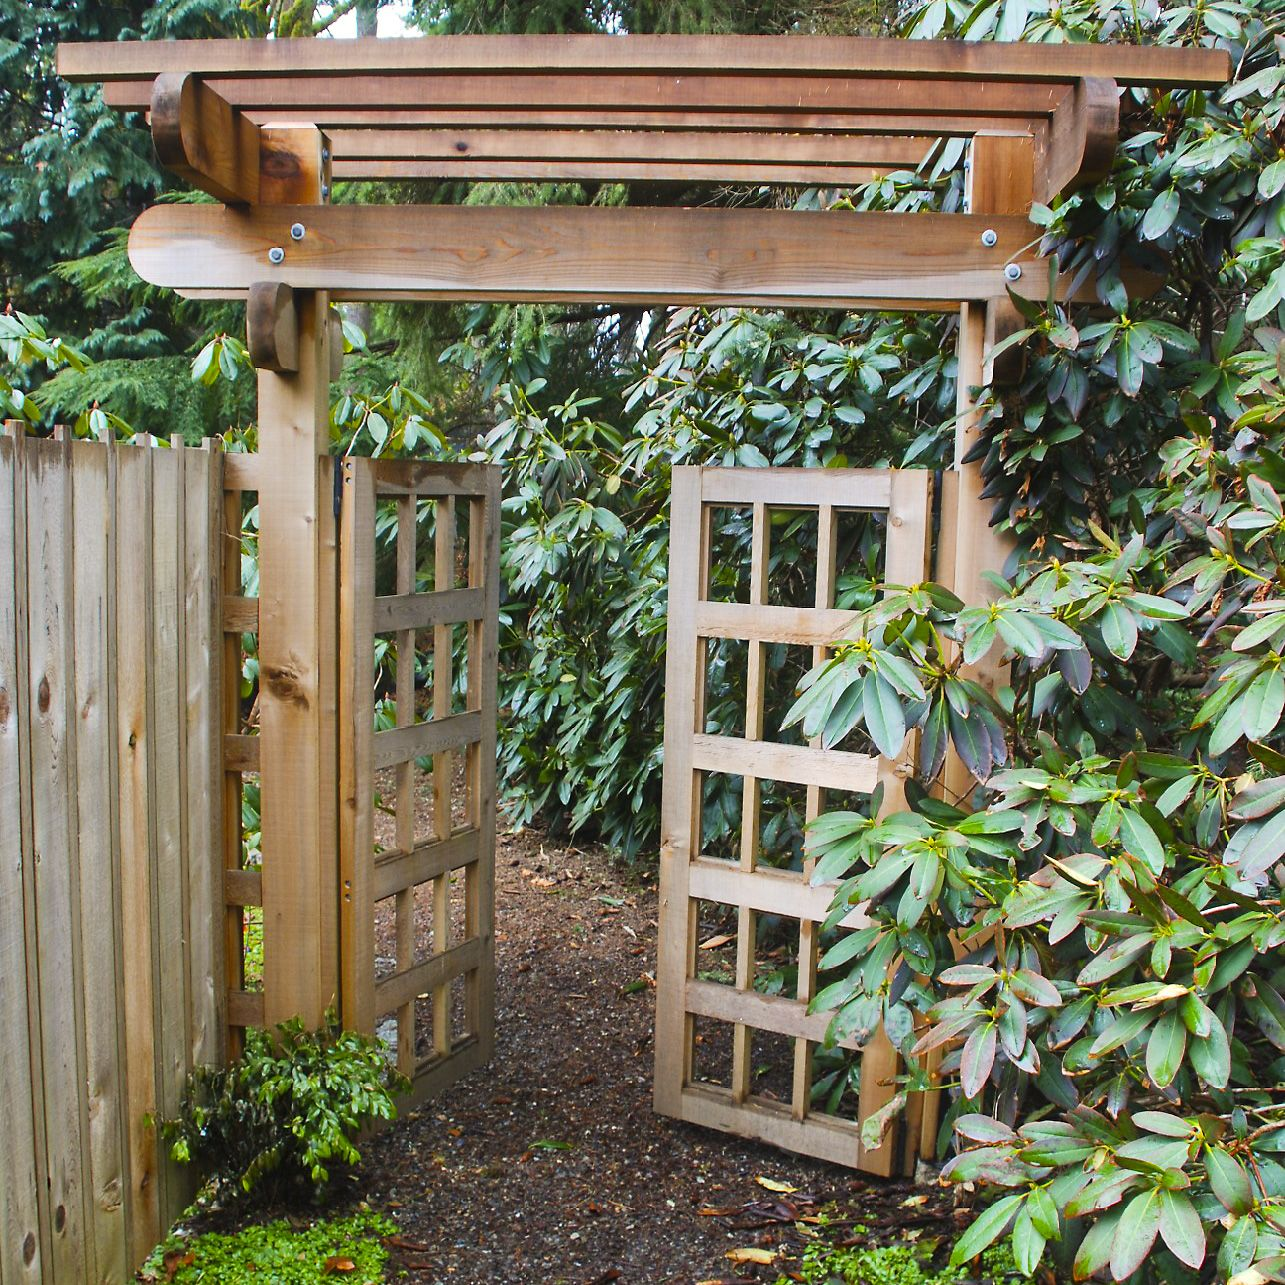 Garden gate ideas gallery of wooden garden gates designs for Garden gate designs wood